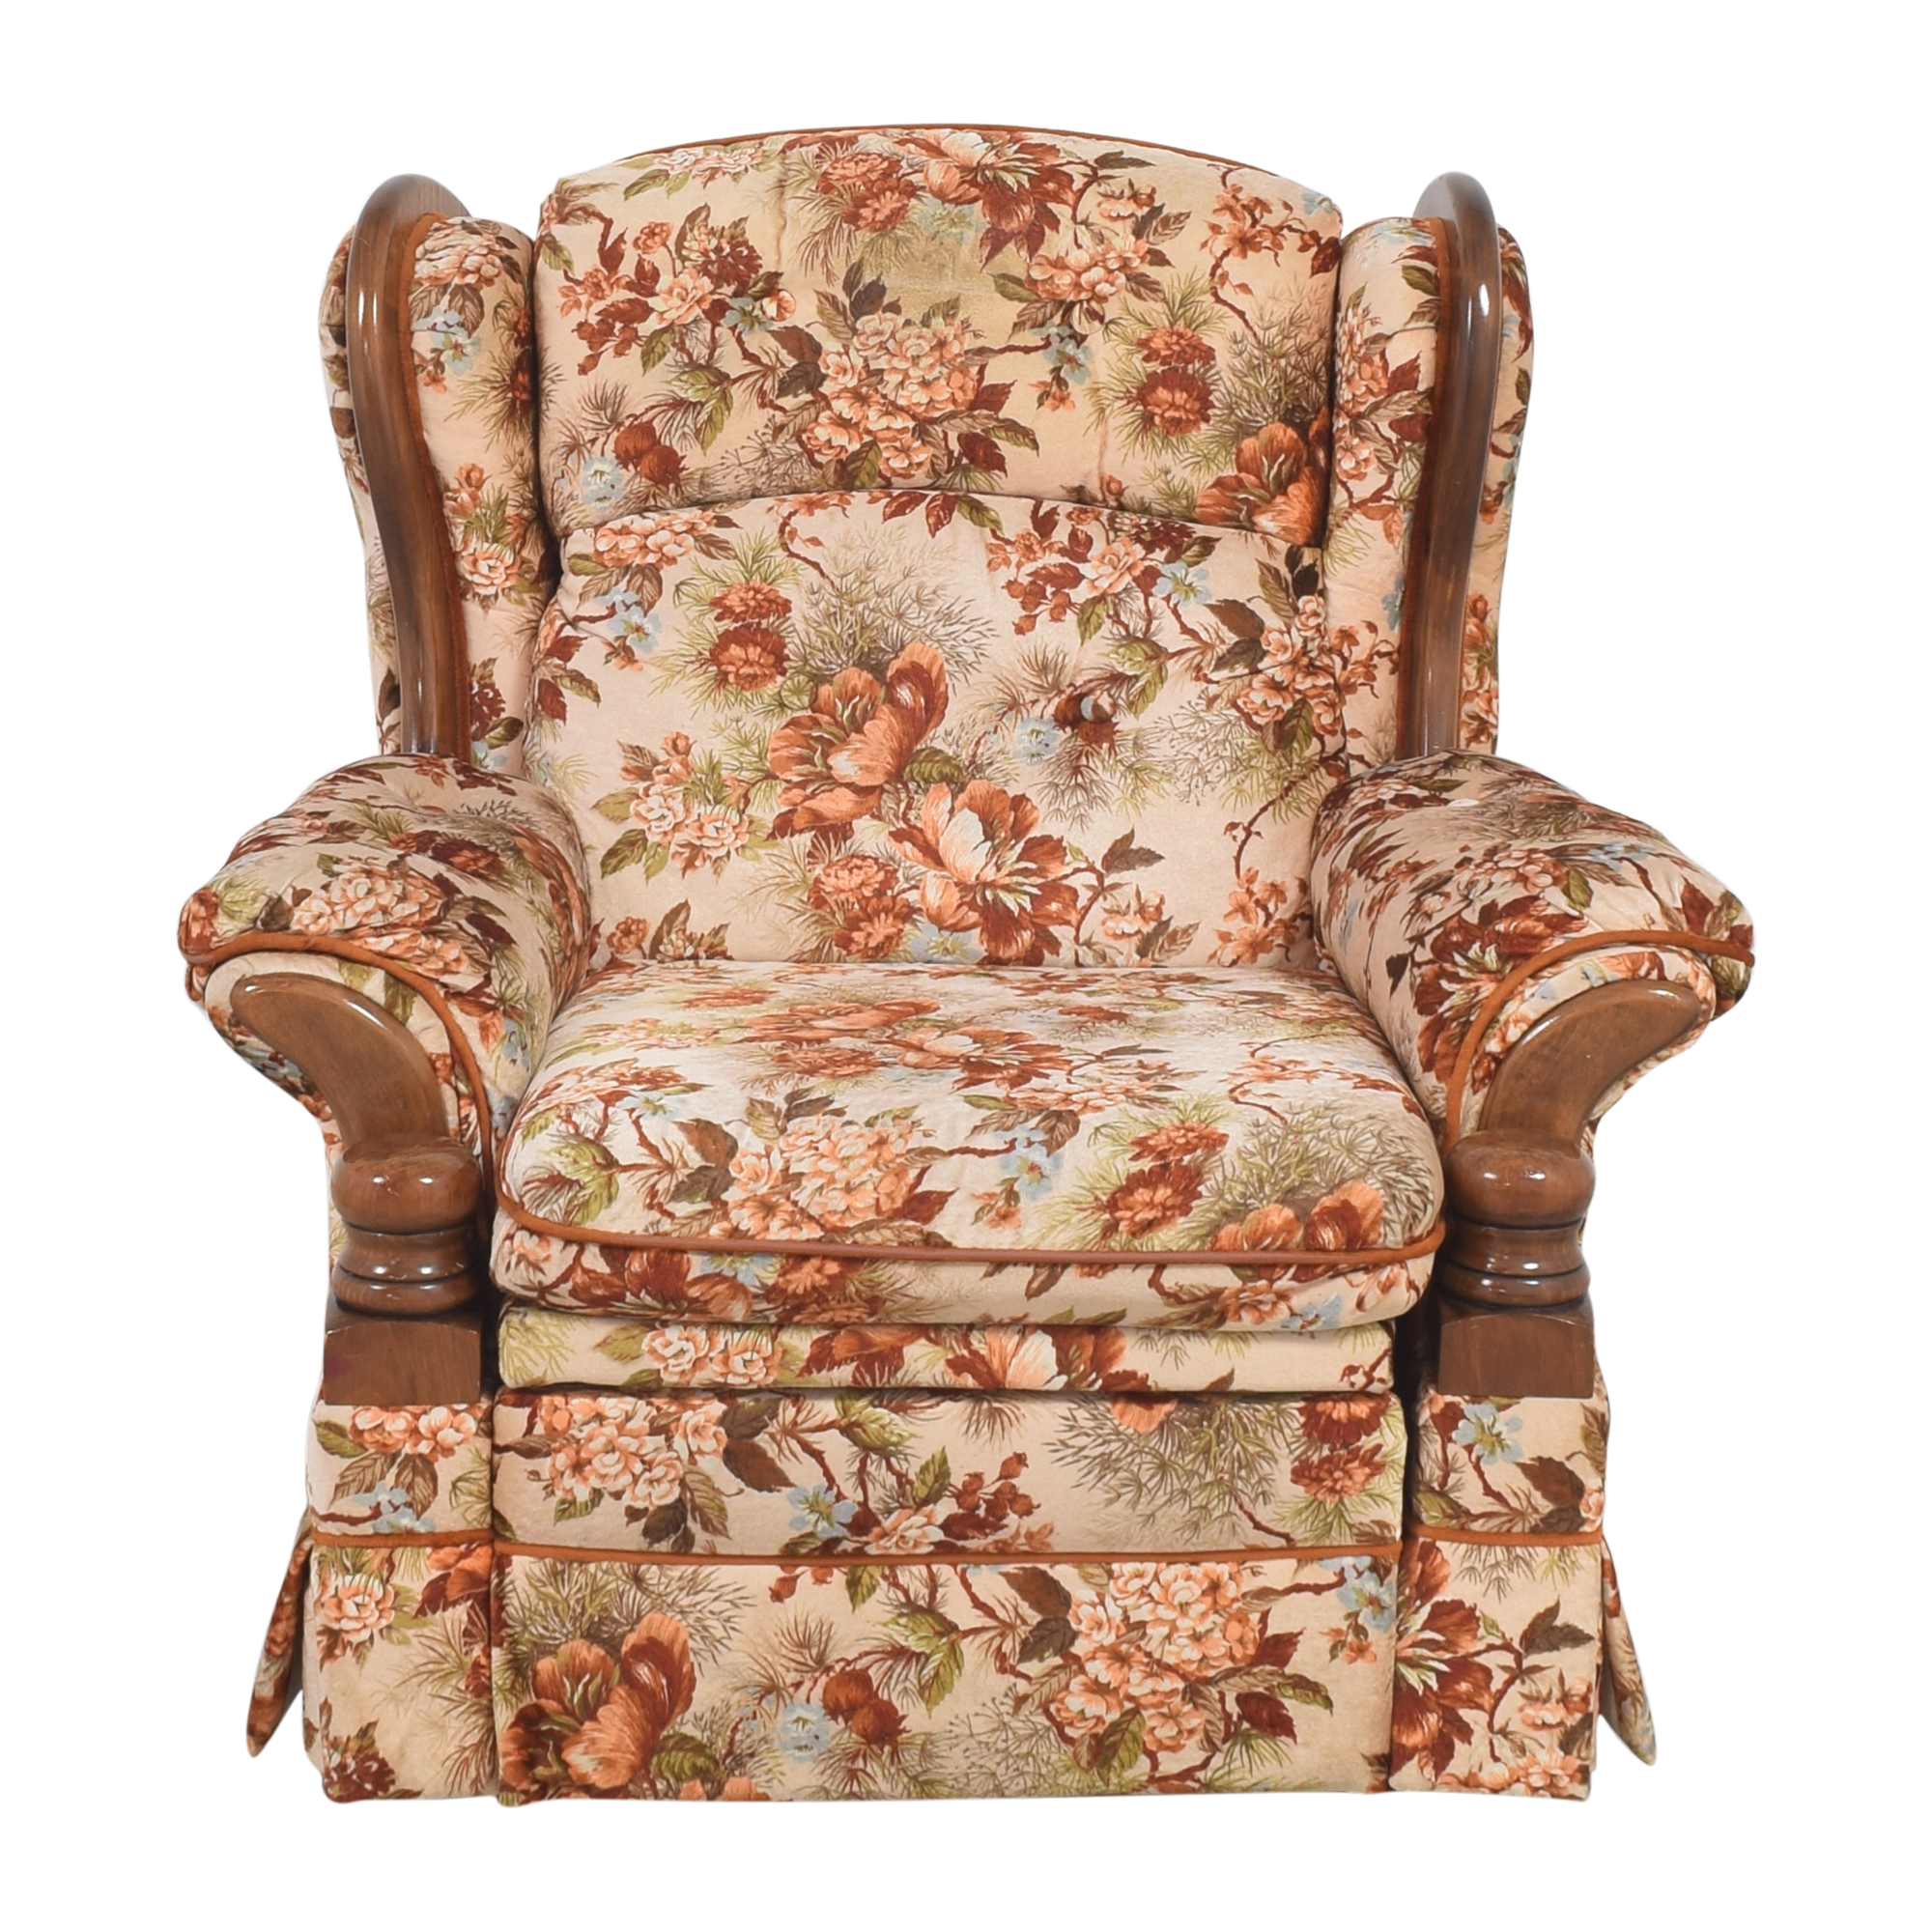 Wayfair Floral Recliner Chair sale